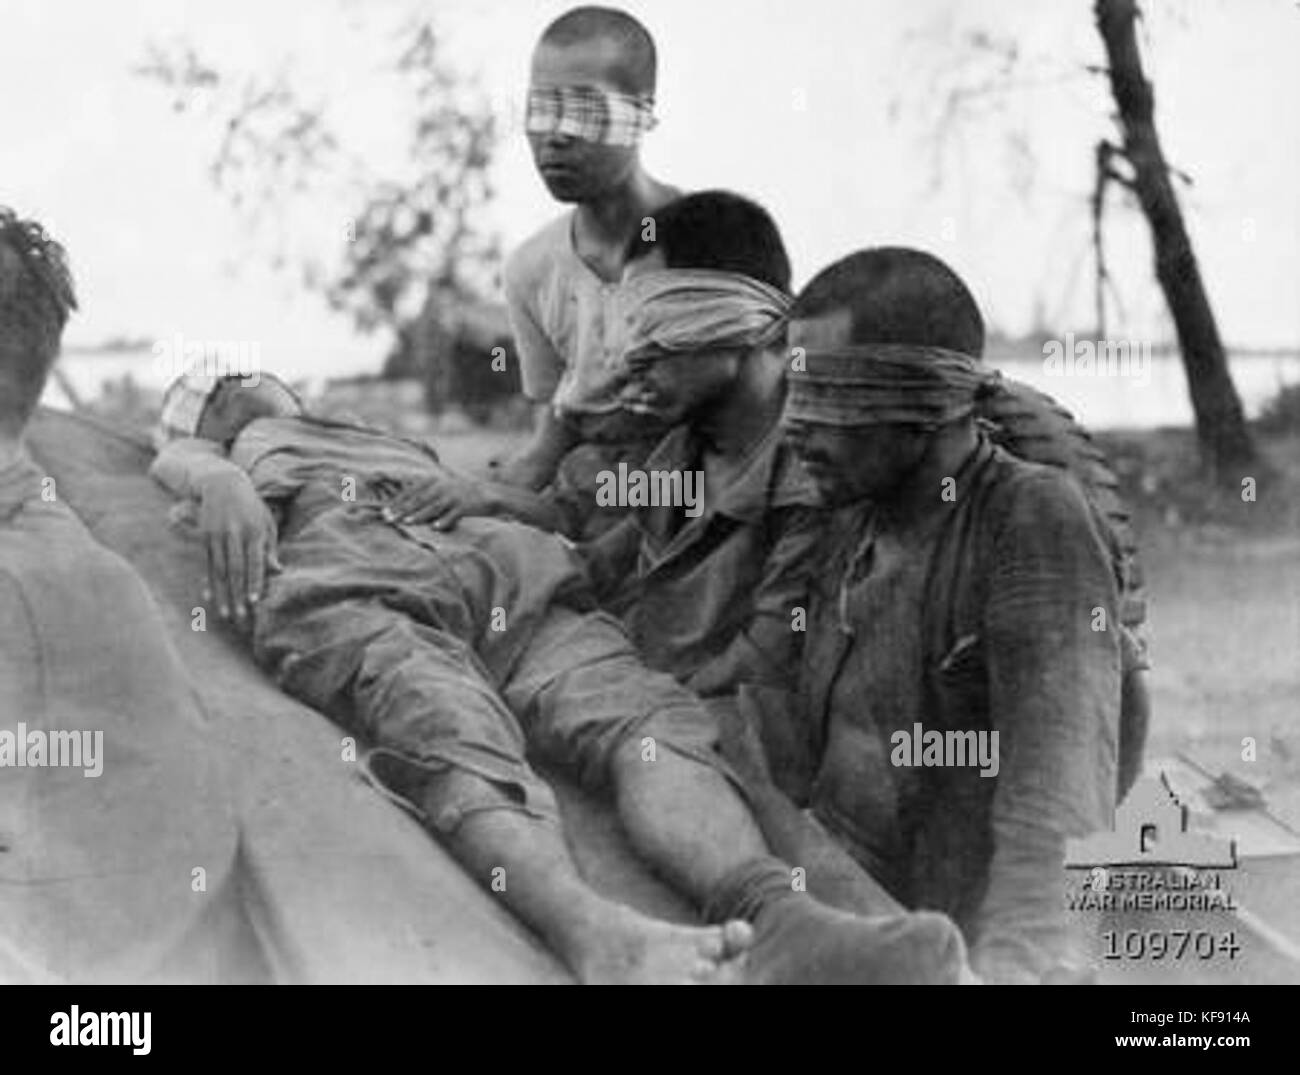 Japanese POWs captured at Brunei in 1945 - Stock Image